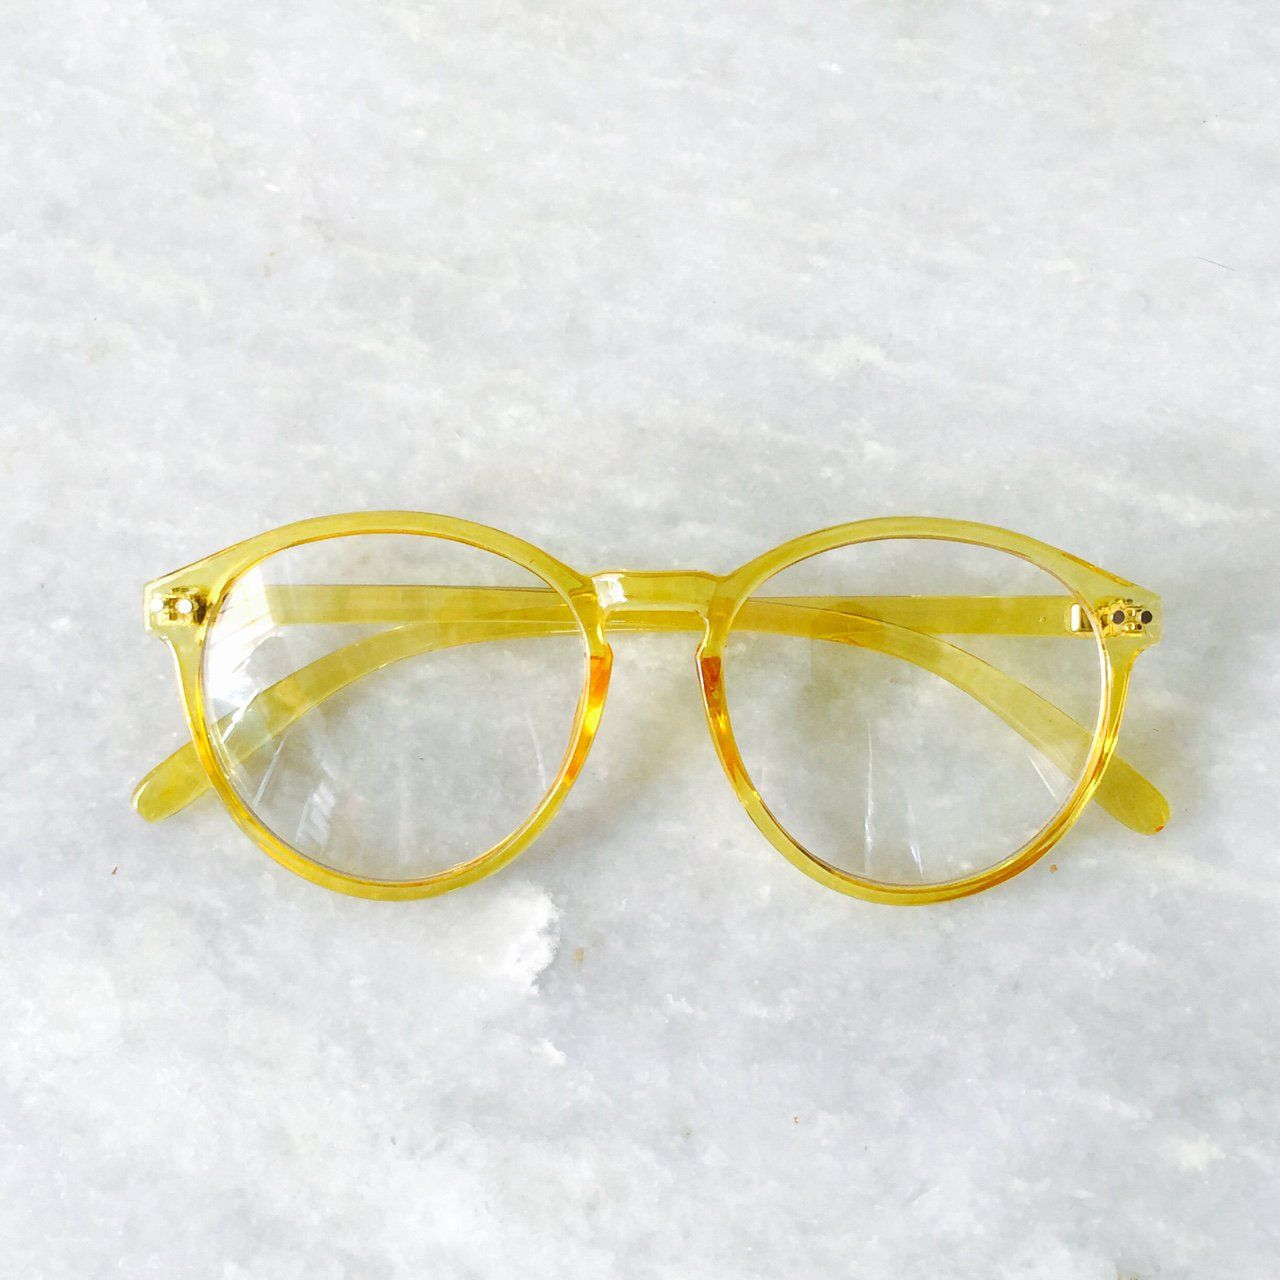 a346fb23e9e Retro Yellow Pantos Frame Clear Lens Glasses ⌛ Yellow Frame • Pantos Style  • Replaceable Lens • Retro Fit • Denim shorts • Basic Tee • Vans Shoes •  SENT ...